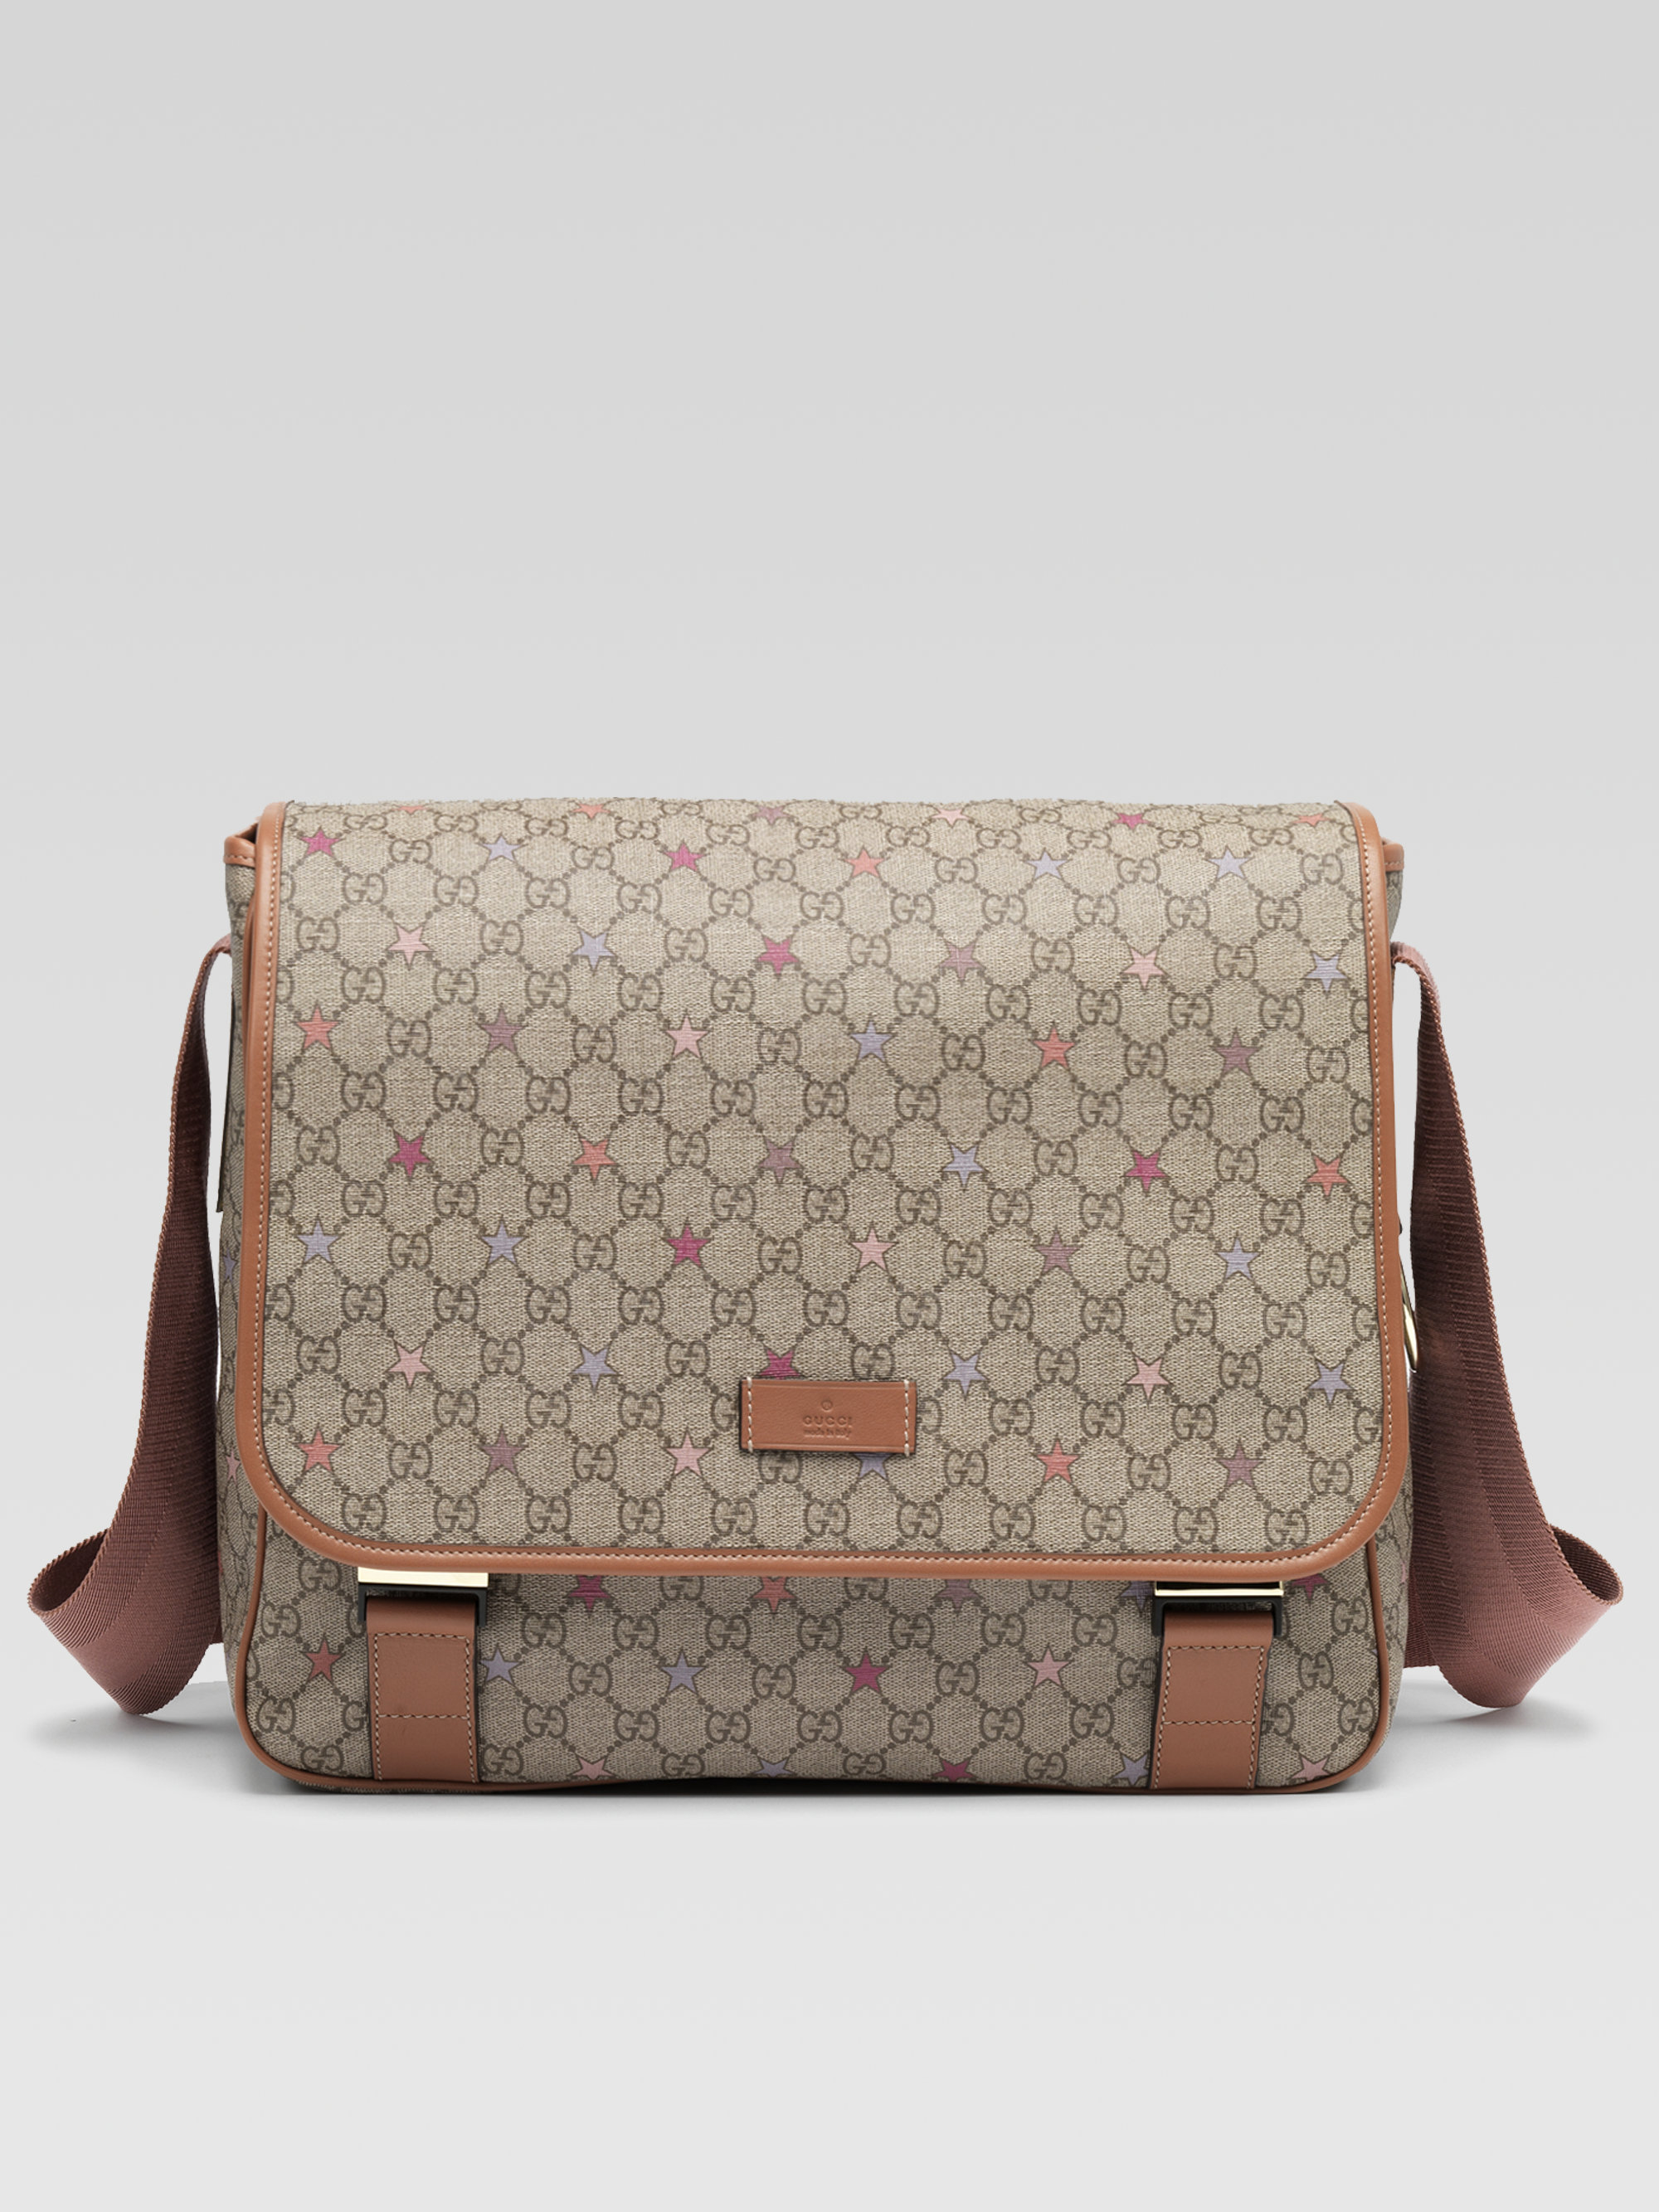 c7eb39fa2b4b Saks Fifth Avenue Gucci Diaper Bag | Stanford Center for Opportunity ...